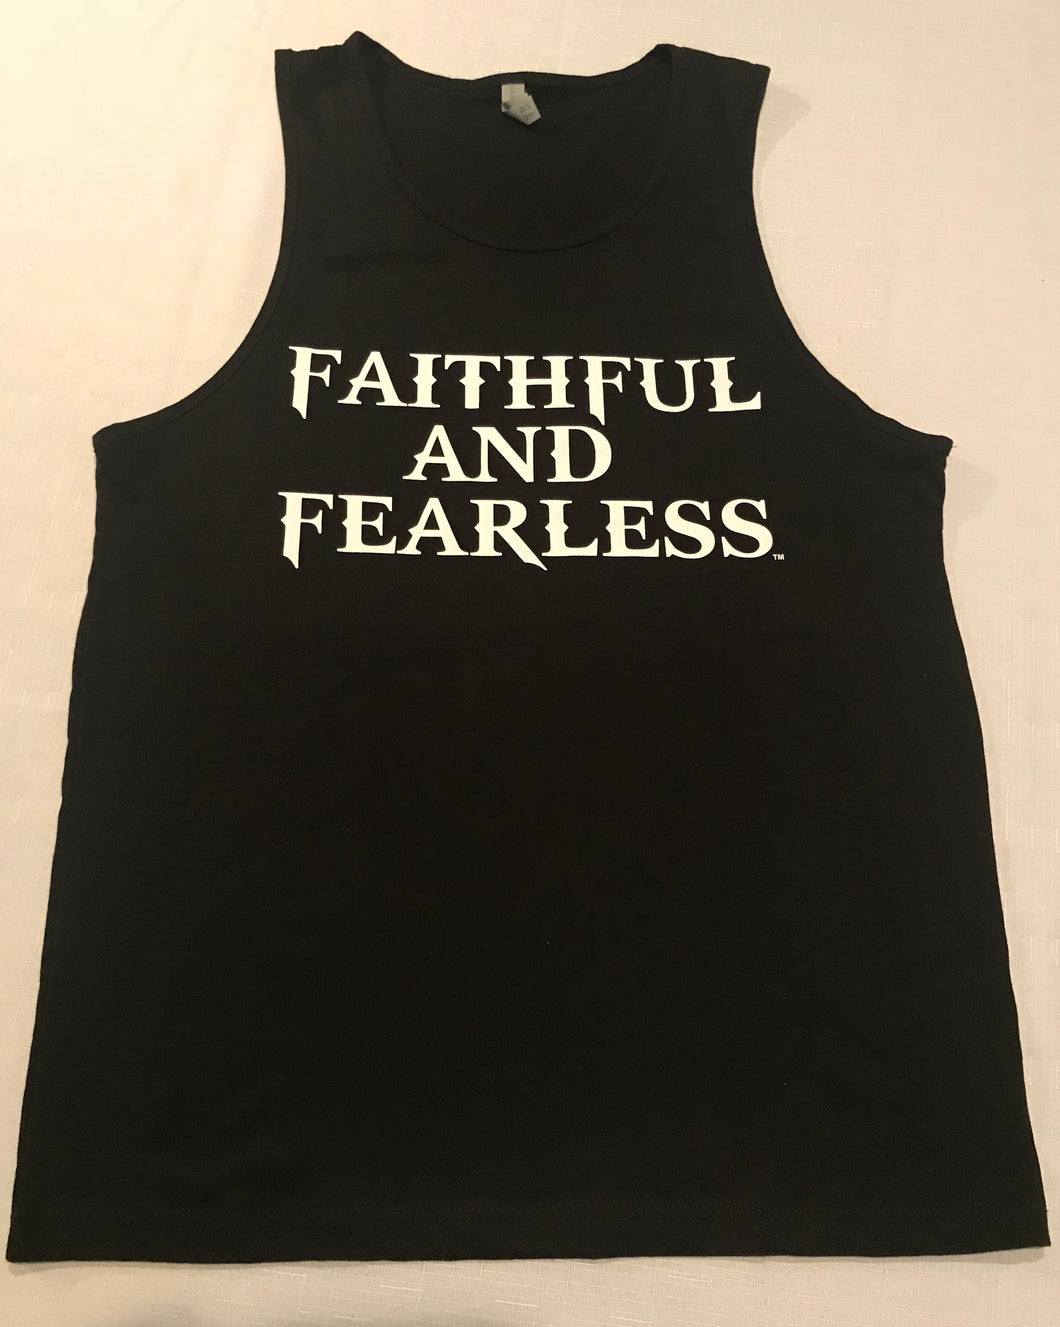 MENS FAITHFUL AND FEARLESS BLACK MUSCLE TANK